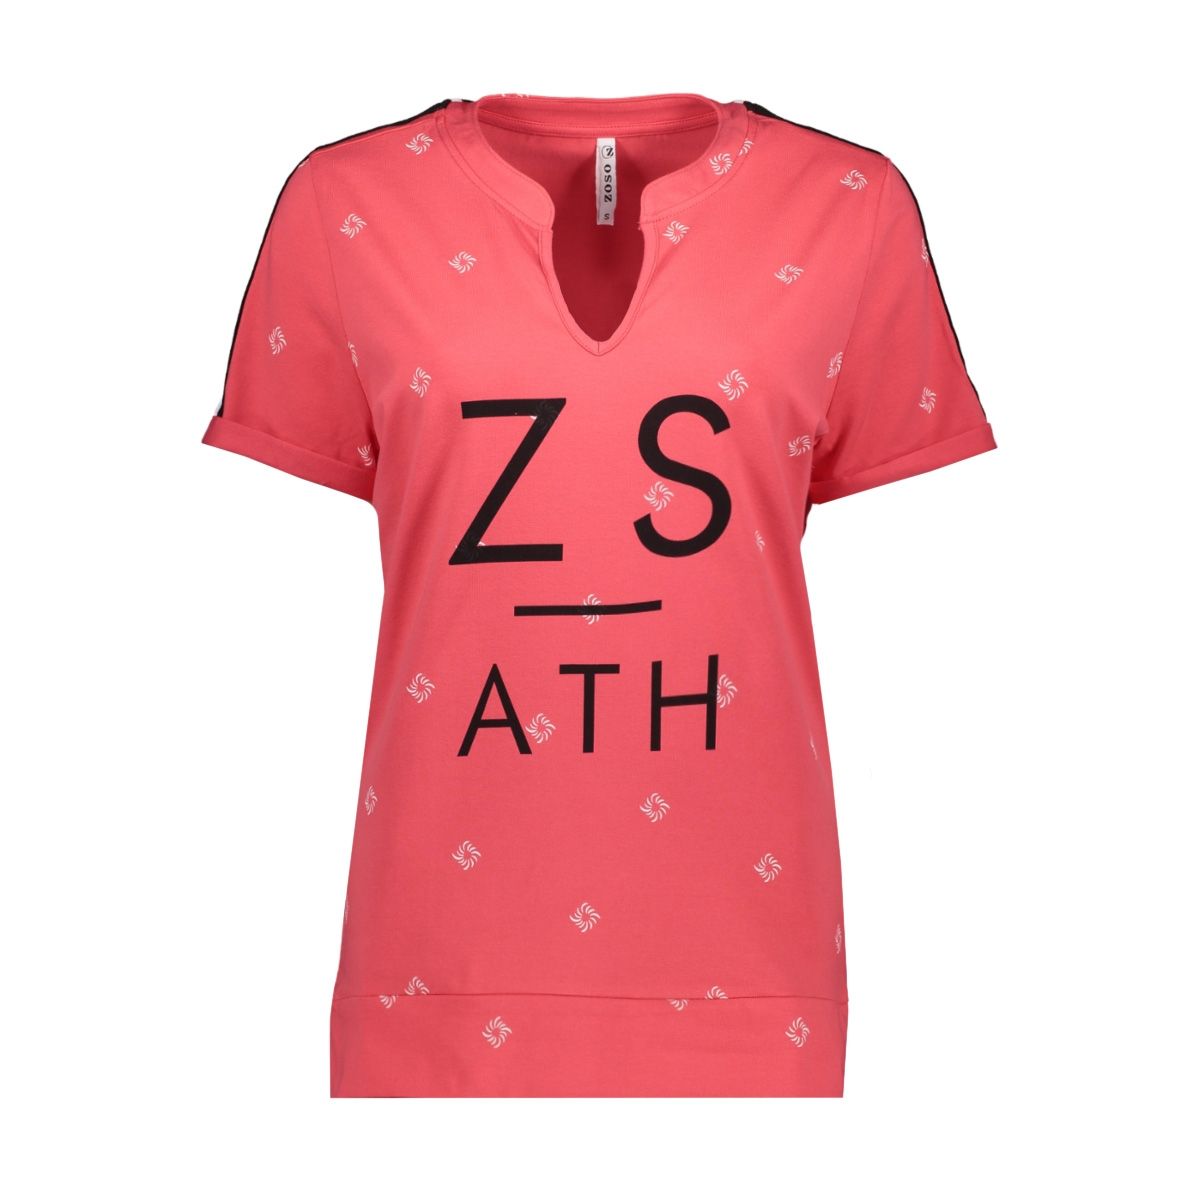 skala printed shirt 193 zoso t-shirt red